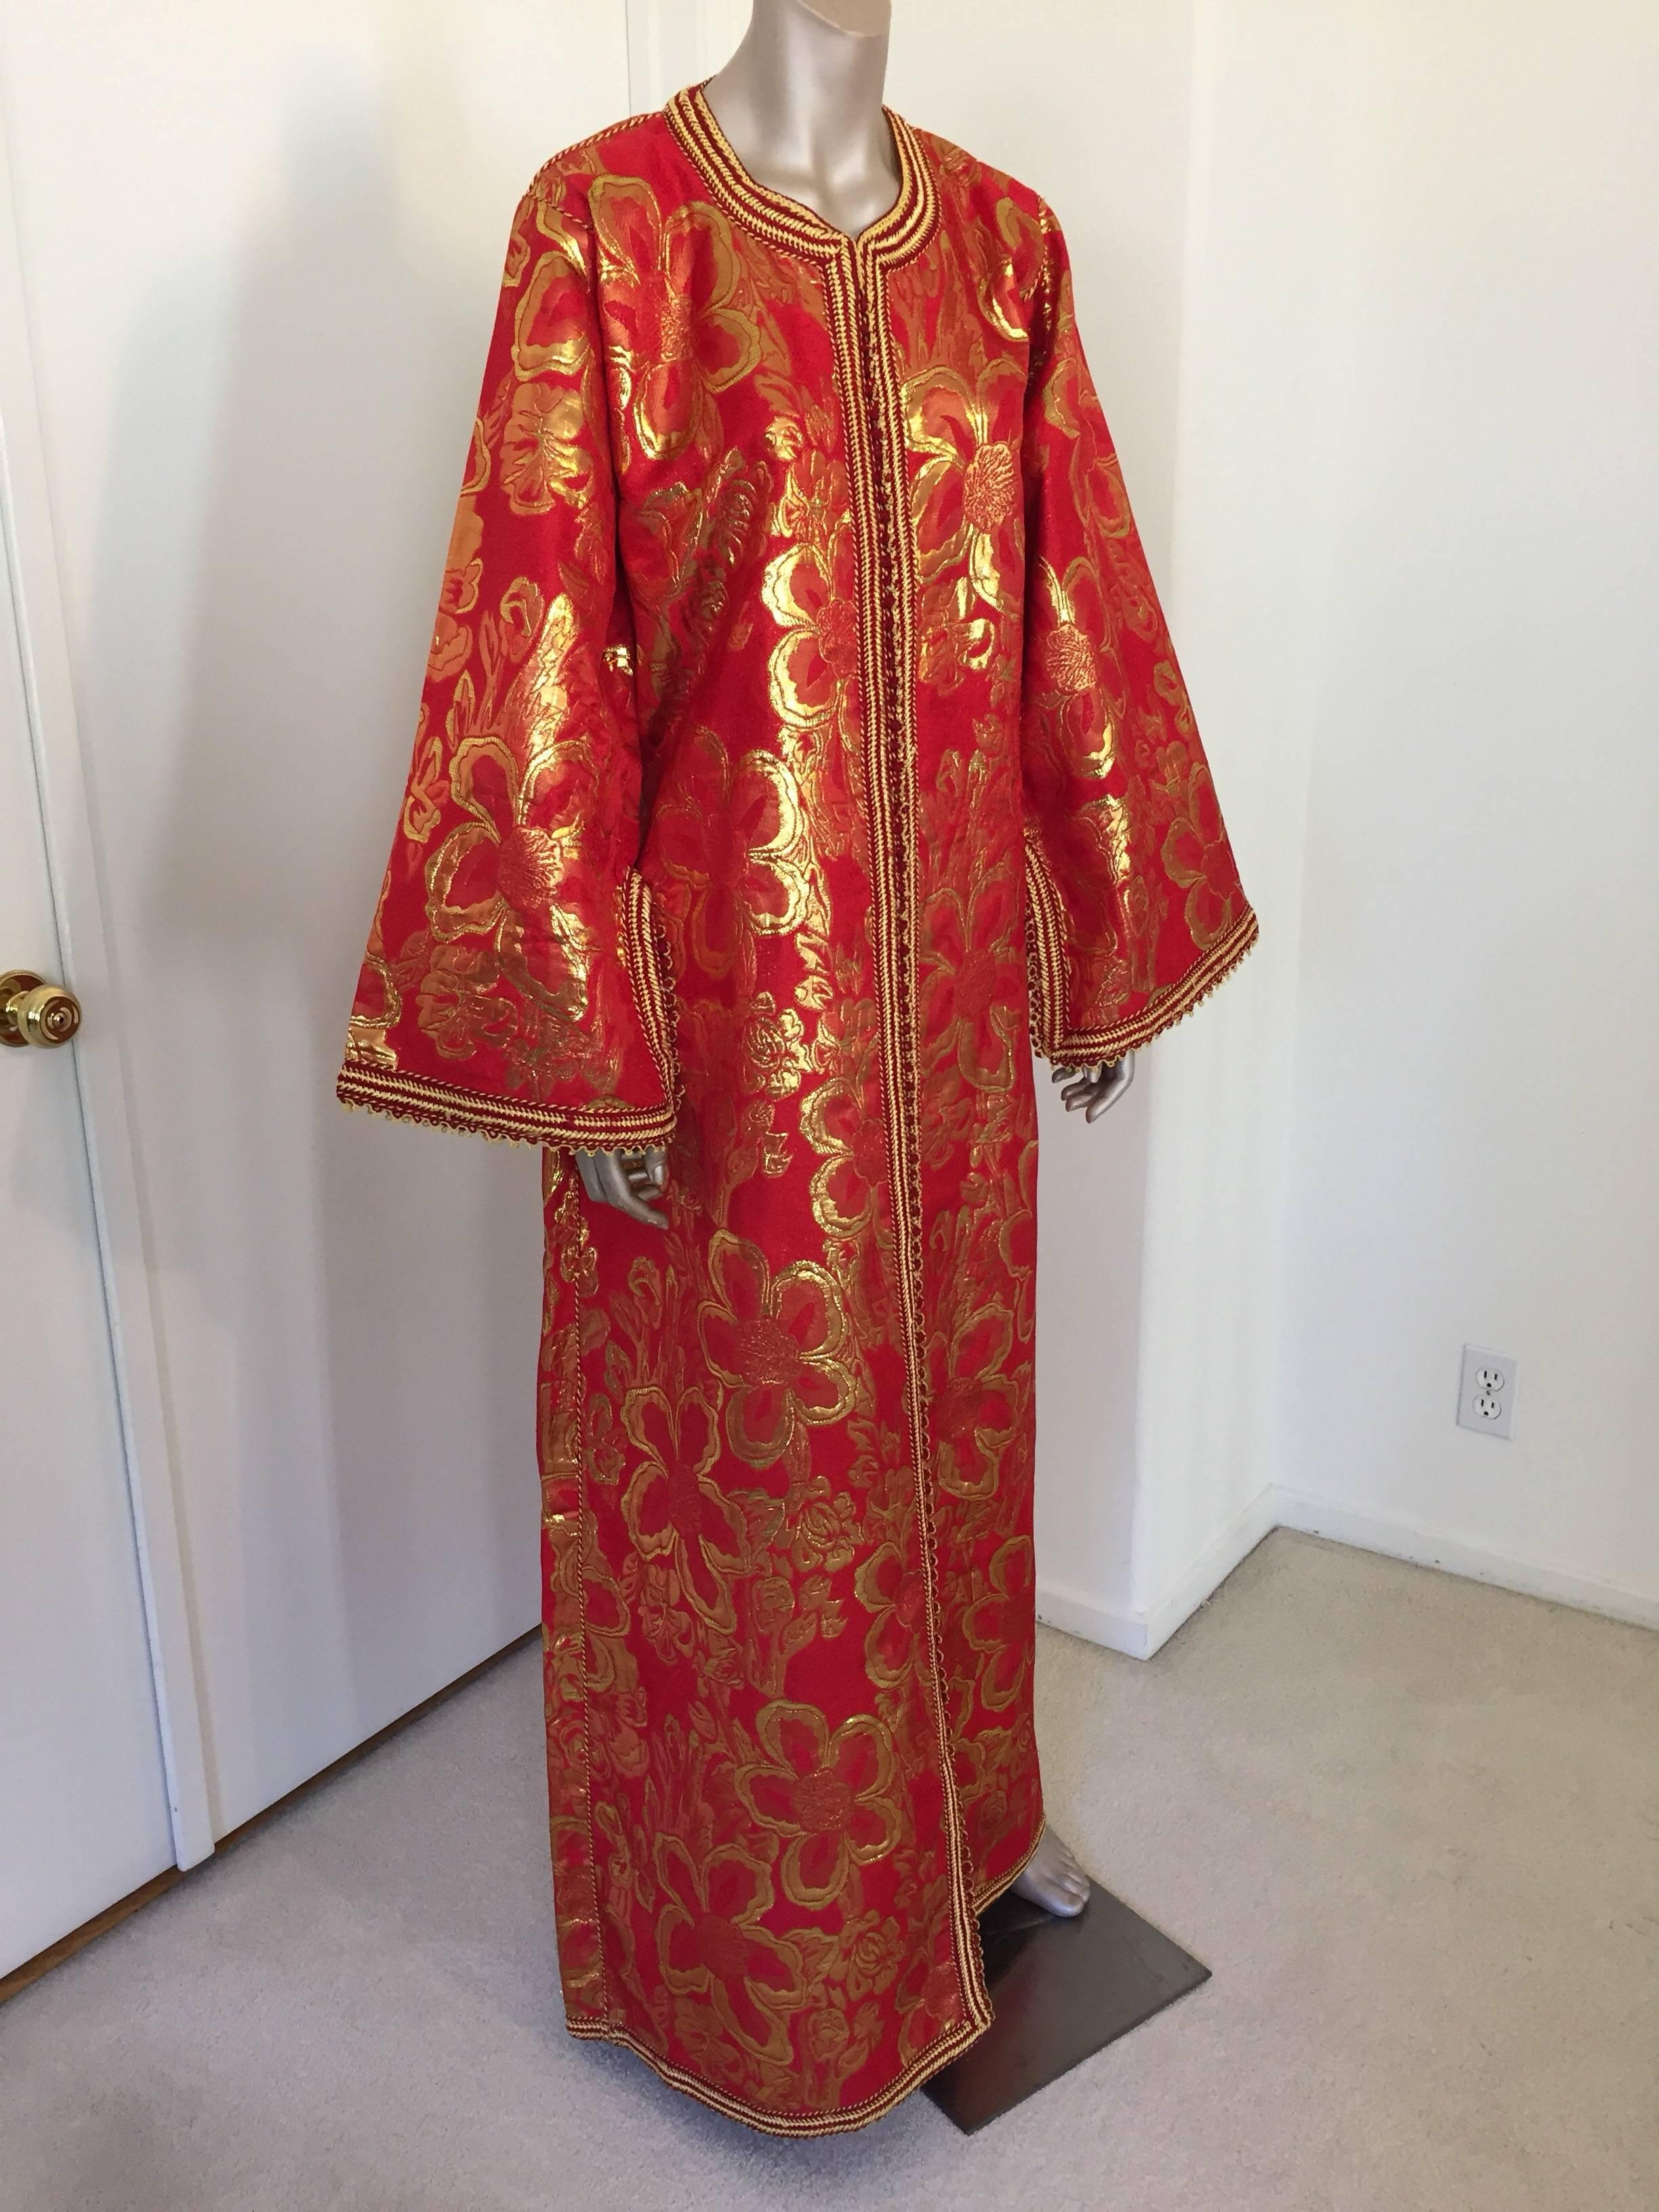 c29c62565b36d Vintage Moroccan Kaftan 1970s Red and Gold Floral Brocade Caftan Maxi Dress  For Sale at 1stdibs